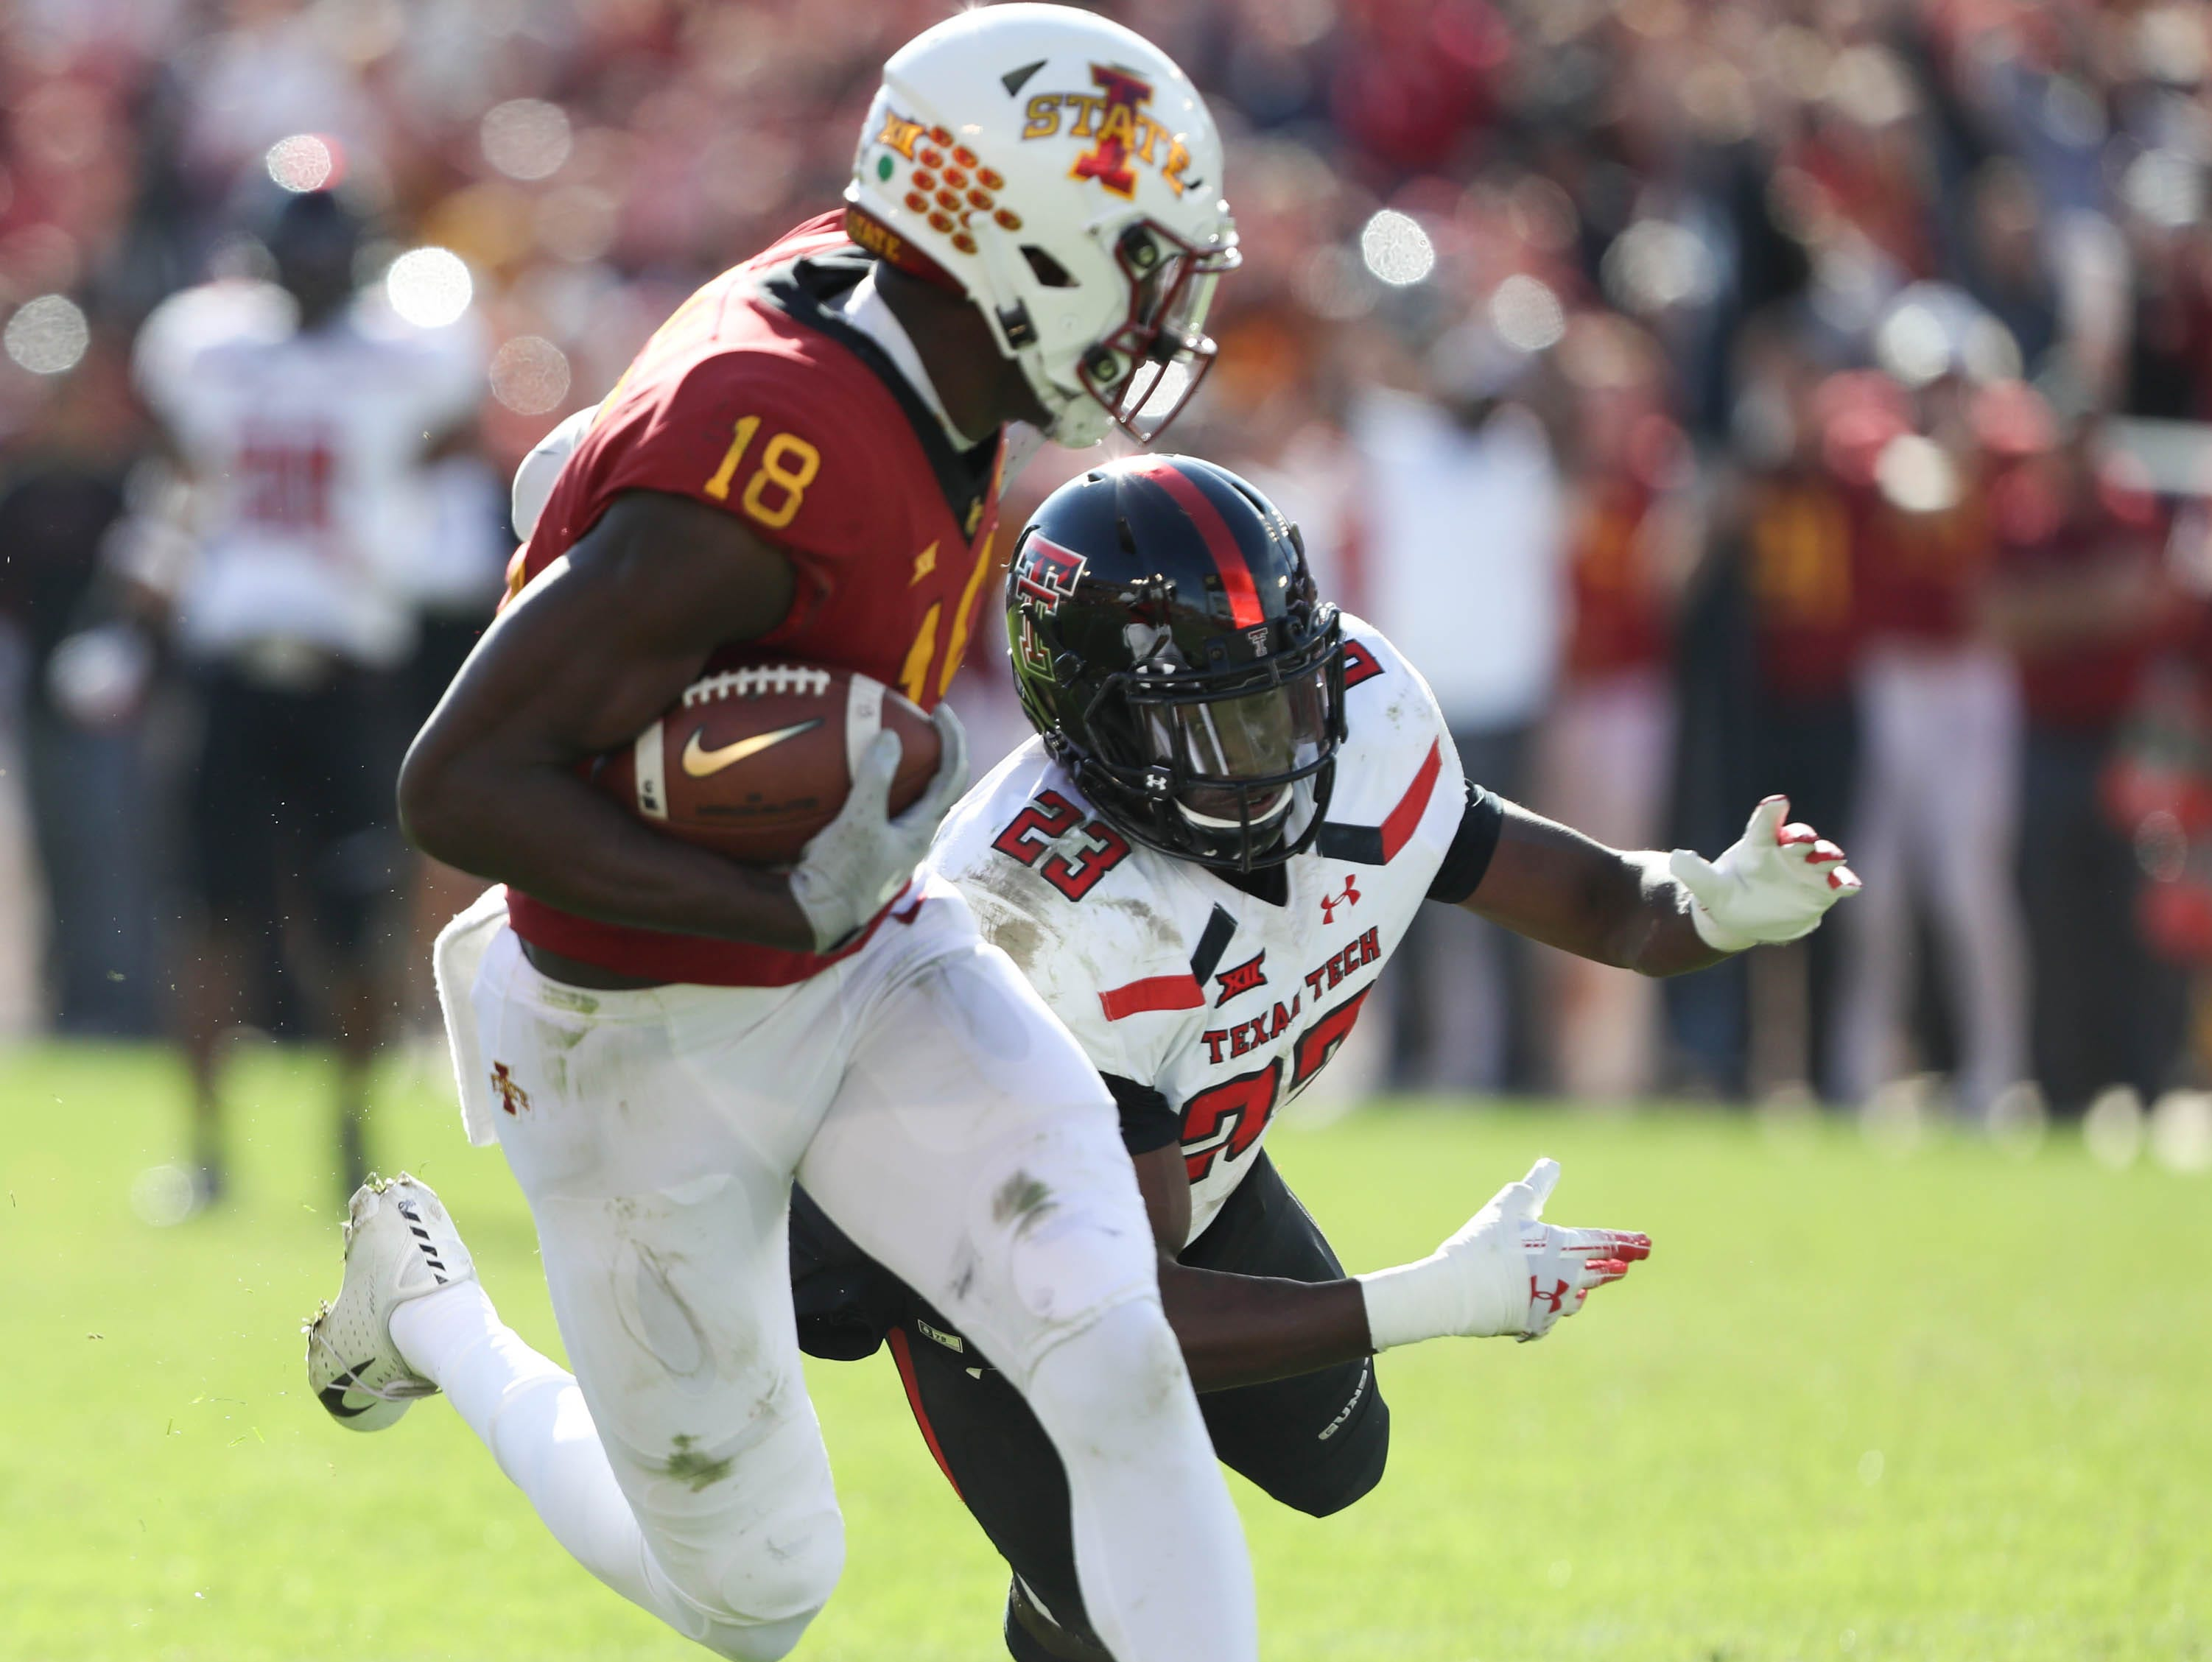 Iowa State Cyclones wide receiver Hakeem Butler (18) catches a pass for the touchdown late in the fourth quarter as Texas Tech Red Raiders defensive back Damarcus Fields (23) makes a late attempt for the tackle at Jack Trice Stadium.